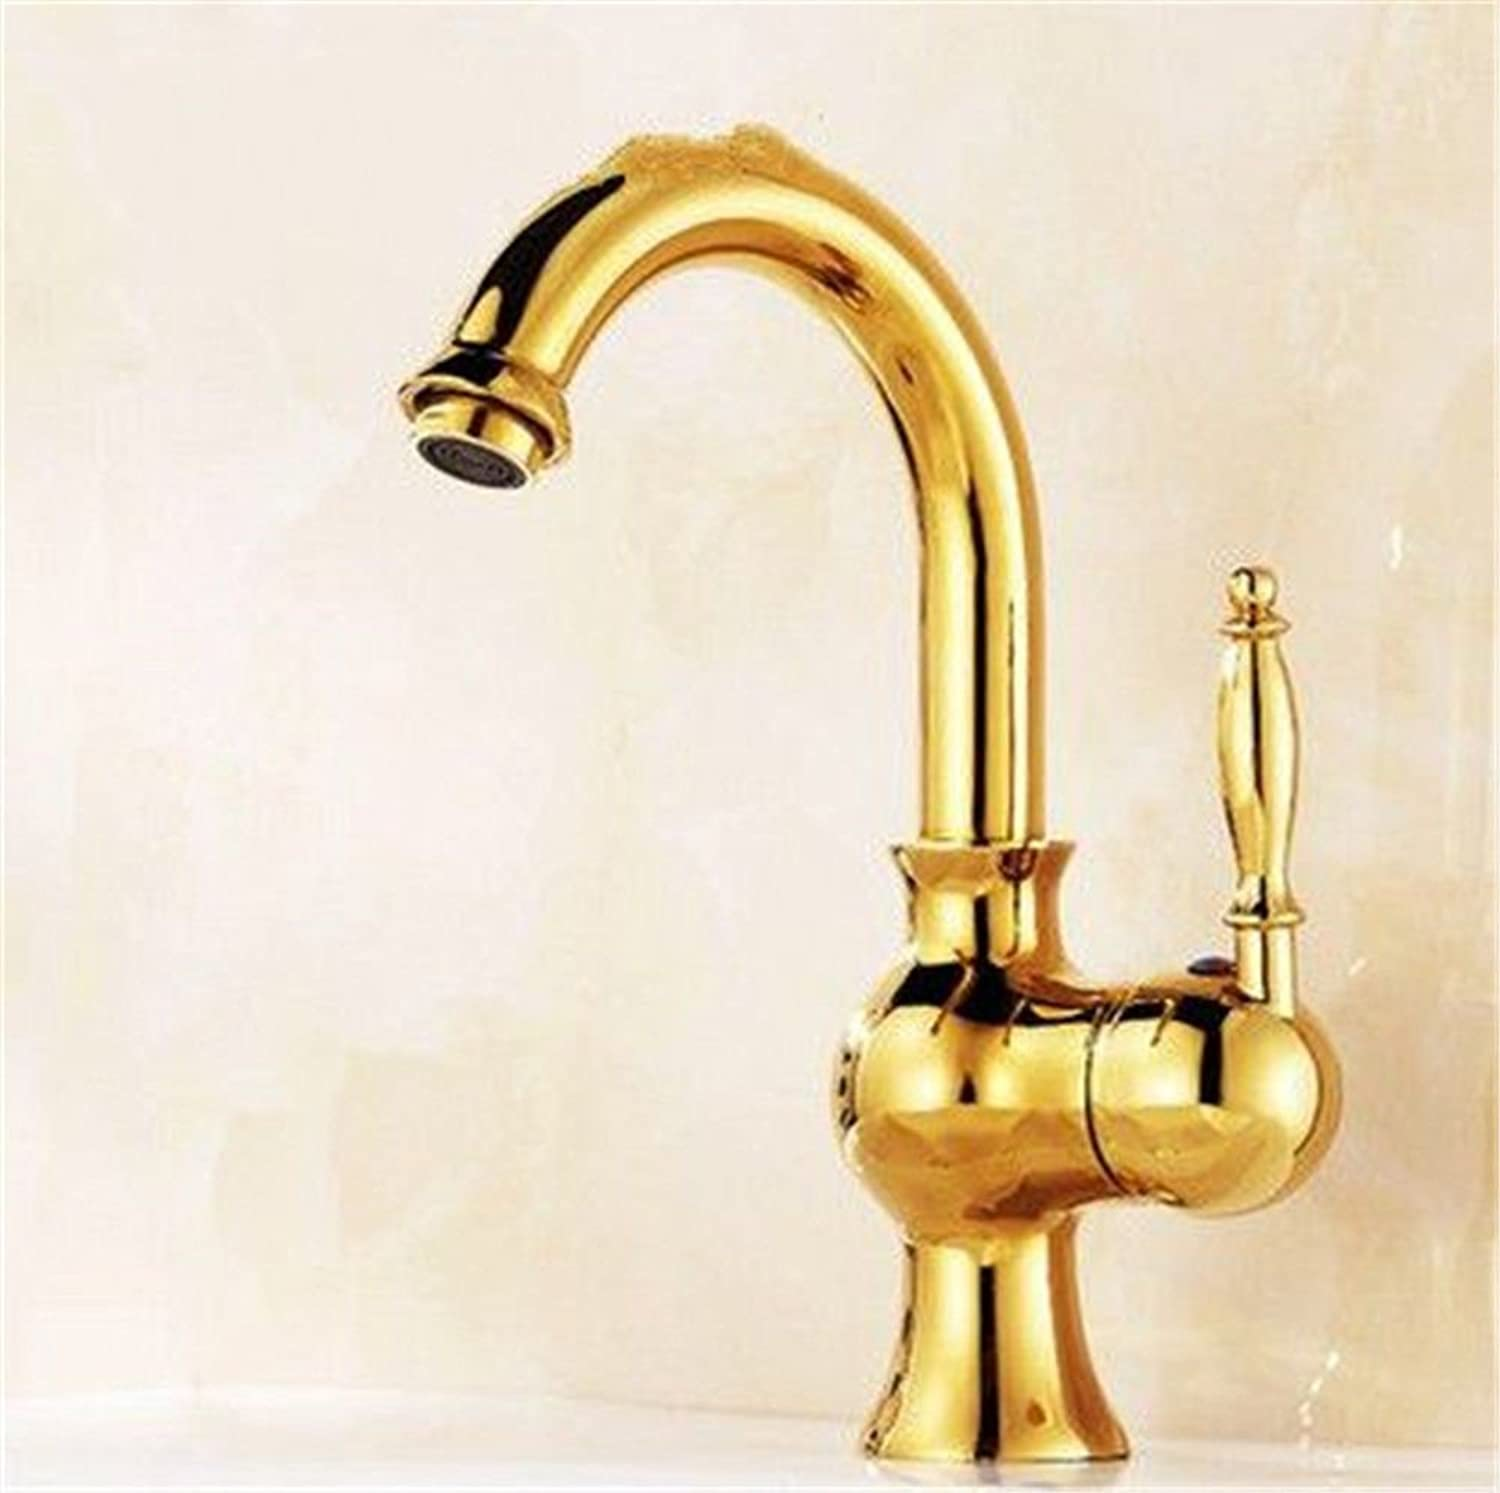 Lpophy Bathroom Sink Mixer Taps Faucet Bath Waterfall Cold and Hot Water Tap for Washroom Bathroom and Kitchen Single Handle Single Hole Sitting Titanium Cold Hot redating gold